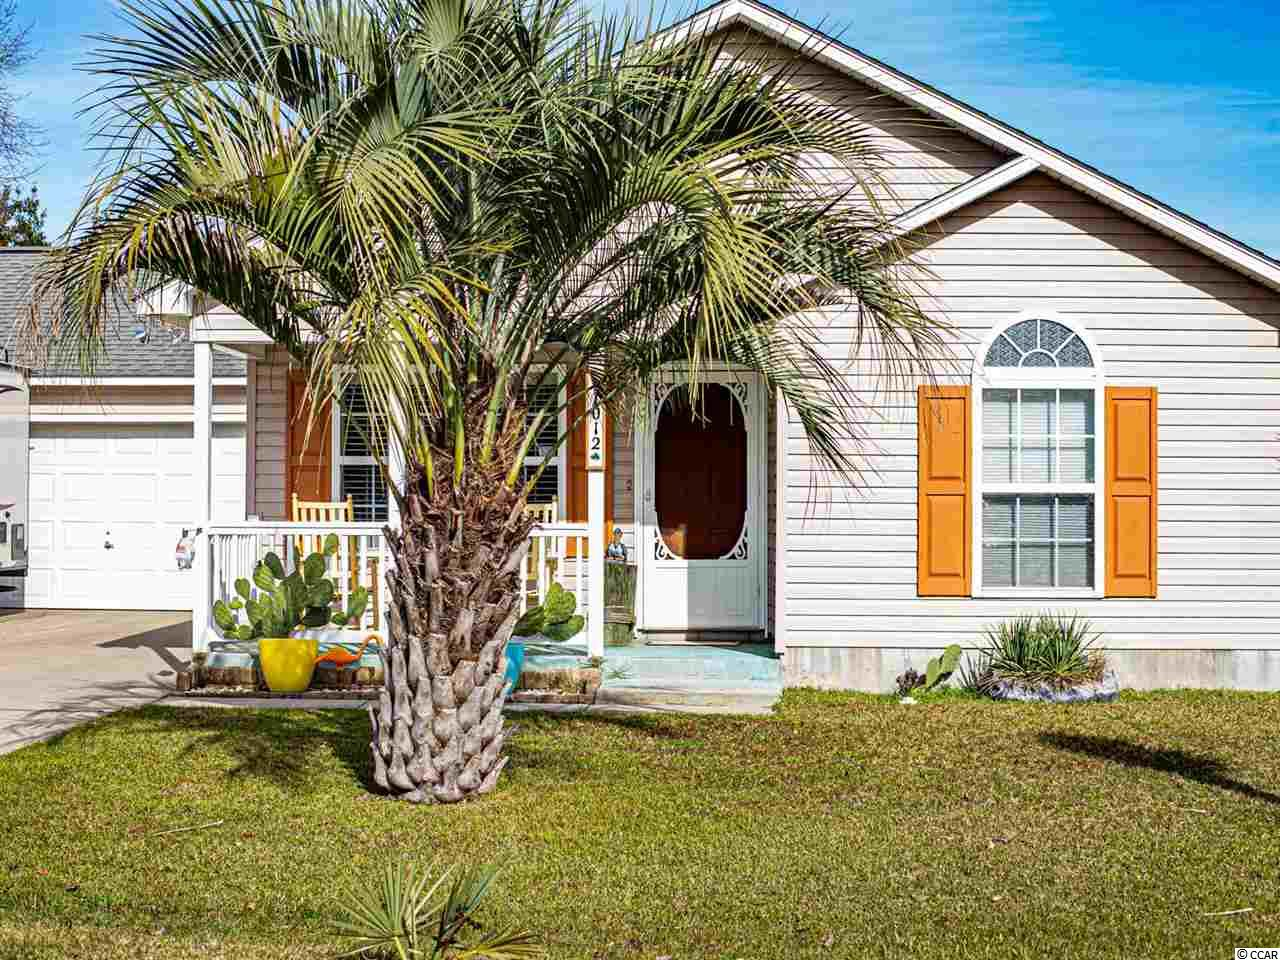 Magnificent!!! Welcome to your new beach home! Enjoy your morning coffee or evening cocktail from your own screened in back porch. This 4 bedroom, 2 bath home has only had one owner, and has been lovingly cared for. New HVAC in 2018! Palm Tree carvings decorate the concrete steps leading to the front porch. The living room boasts beautiful wood-look laminate flooring, upper wall decorative cutout nook, plantation shutters, and a stunning refinished knotty pine accent wall, reclaimed from a historic home renovation in downtown Conway. The same knotty pine continues in the wainscoting throughout the dining room. Beautiful blue country style cabinets compliment the gorgeous blue speckled pattern in the stunning freestanding quartz kitchen counters. The sliding glass doors in the dining area are new, and have been outfitted with plantation shutters. 6 ft white vinyl privacy fencing surrounds the back yard area and the 6x8 aluminum detached storage, making the yard perfect for pets and a private oasis for the pool. The home is outfitted with many additional features, including a whole home surge protector, located in the main electrical box. Pines of St. James is located in the highly desirable St. James school district, and has low HOA dues! Schedule your showing today. This home will not last!